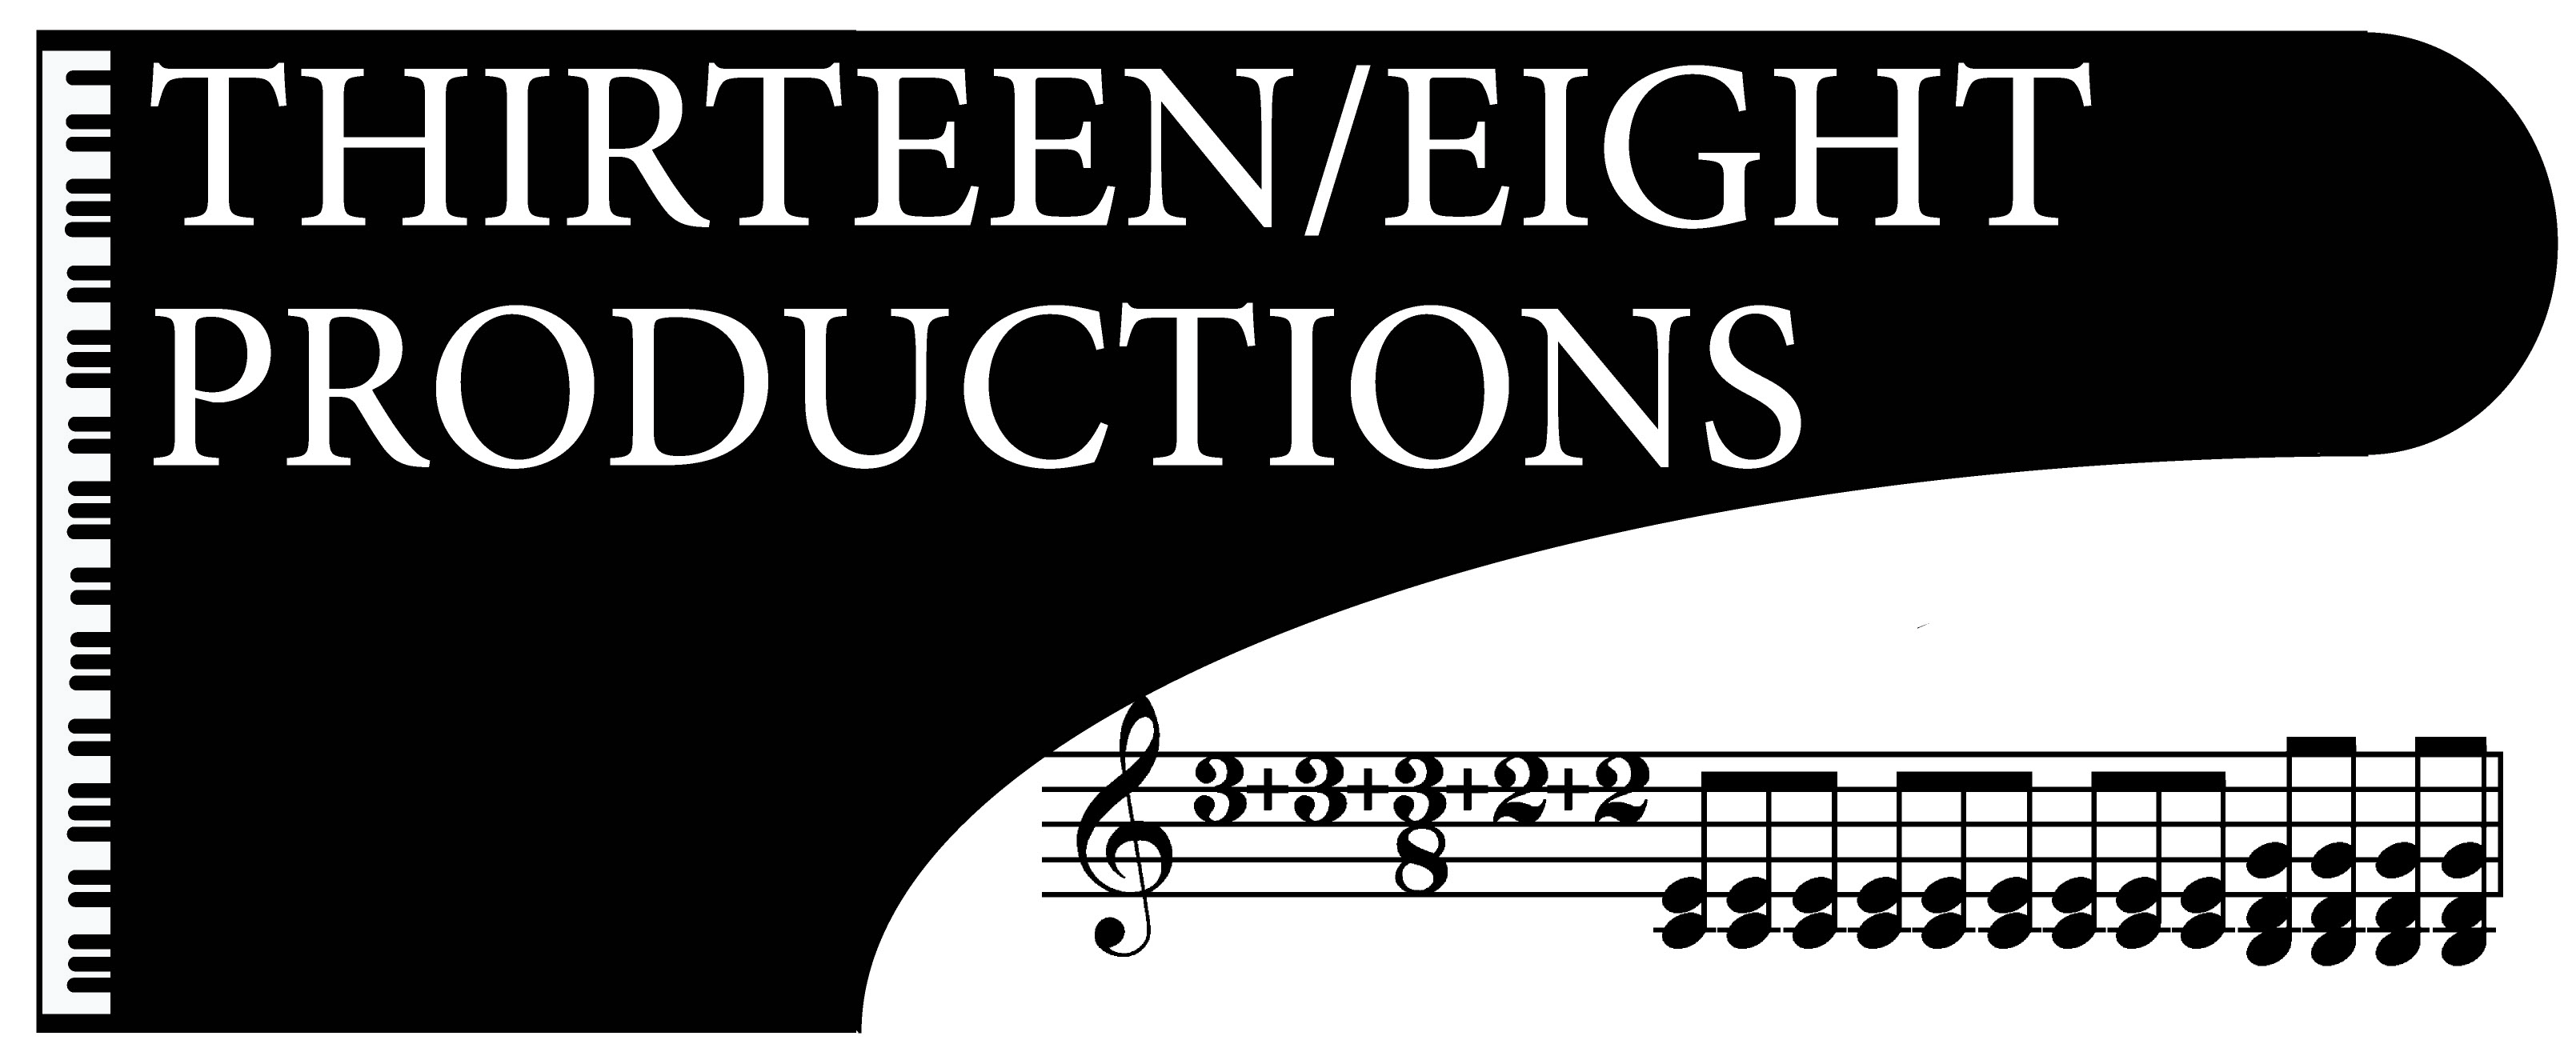 Thirteen/Eight Productions